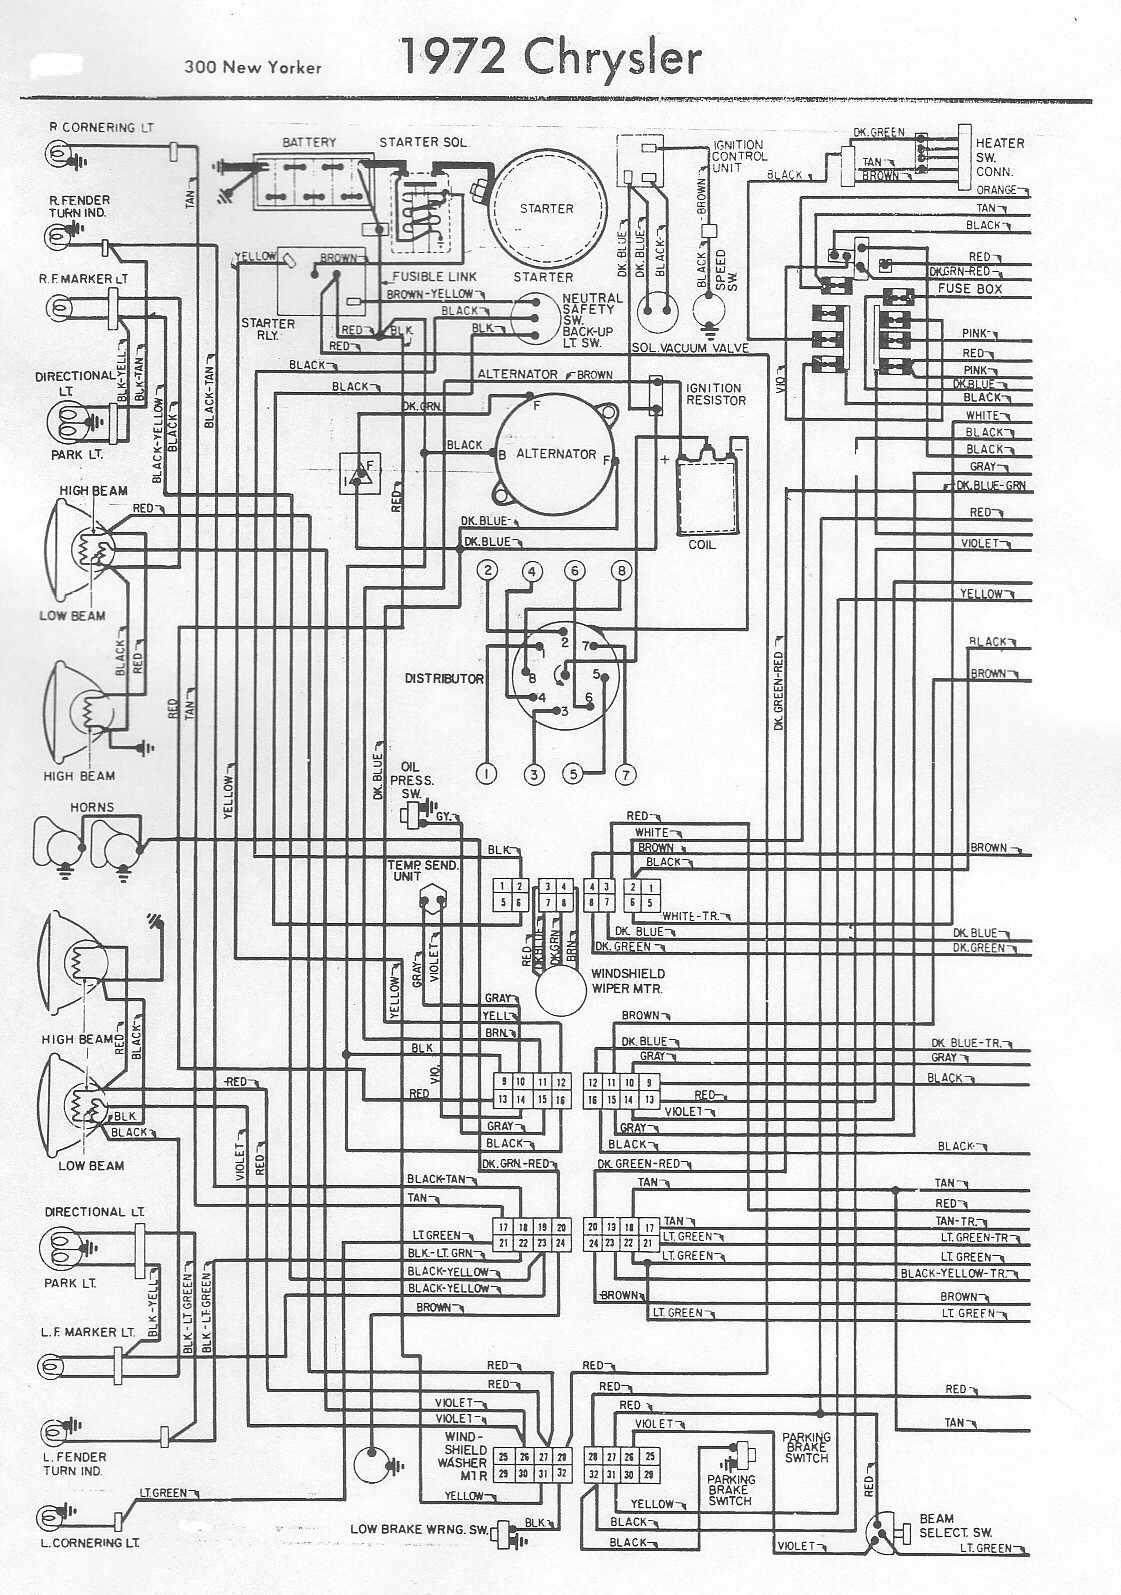 chrysler 300m starter wiring wiring diagram rh blaknwyt co 2003 Crysler Town and Country Wiring Diagrams Automotive 2003 Crysler Town and Country Wiring Diagrams Automotive